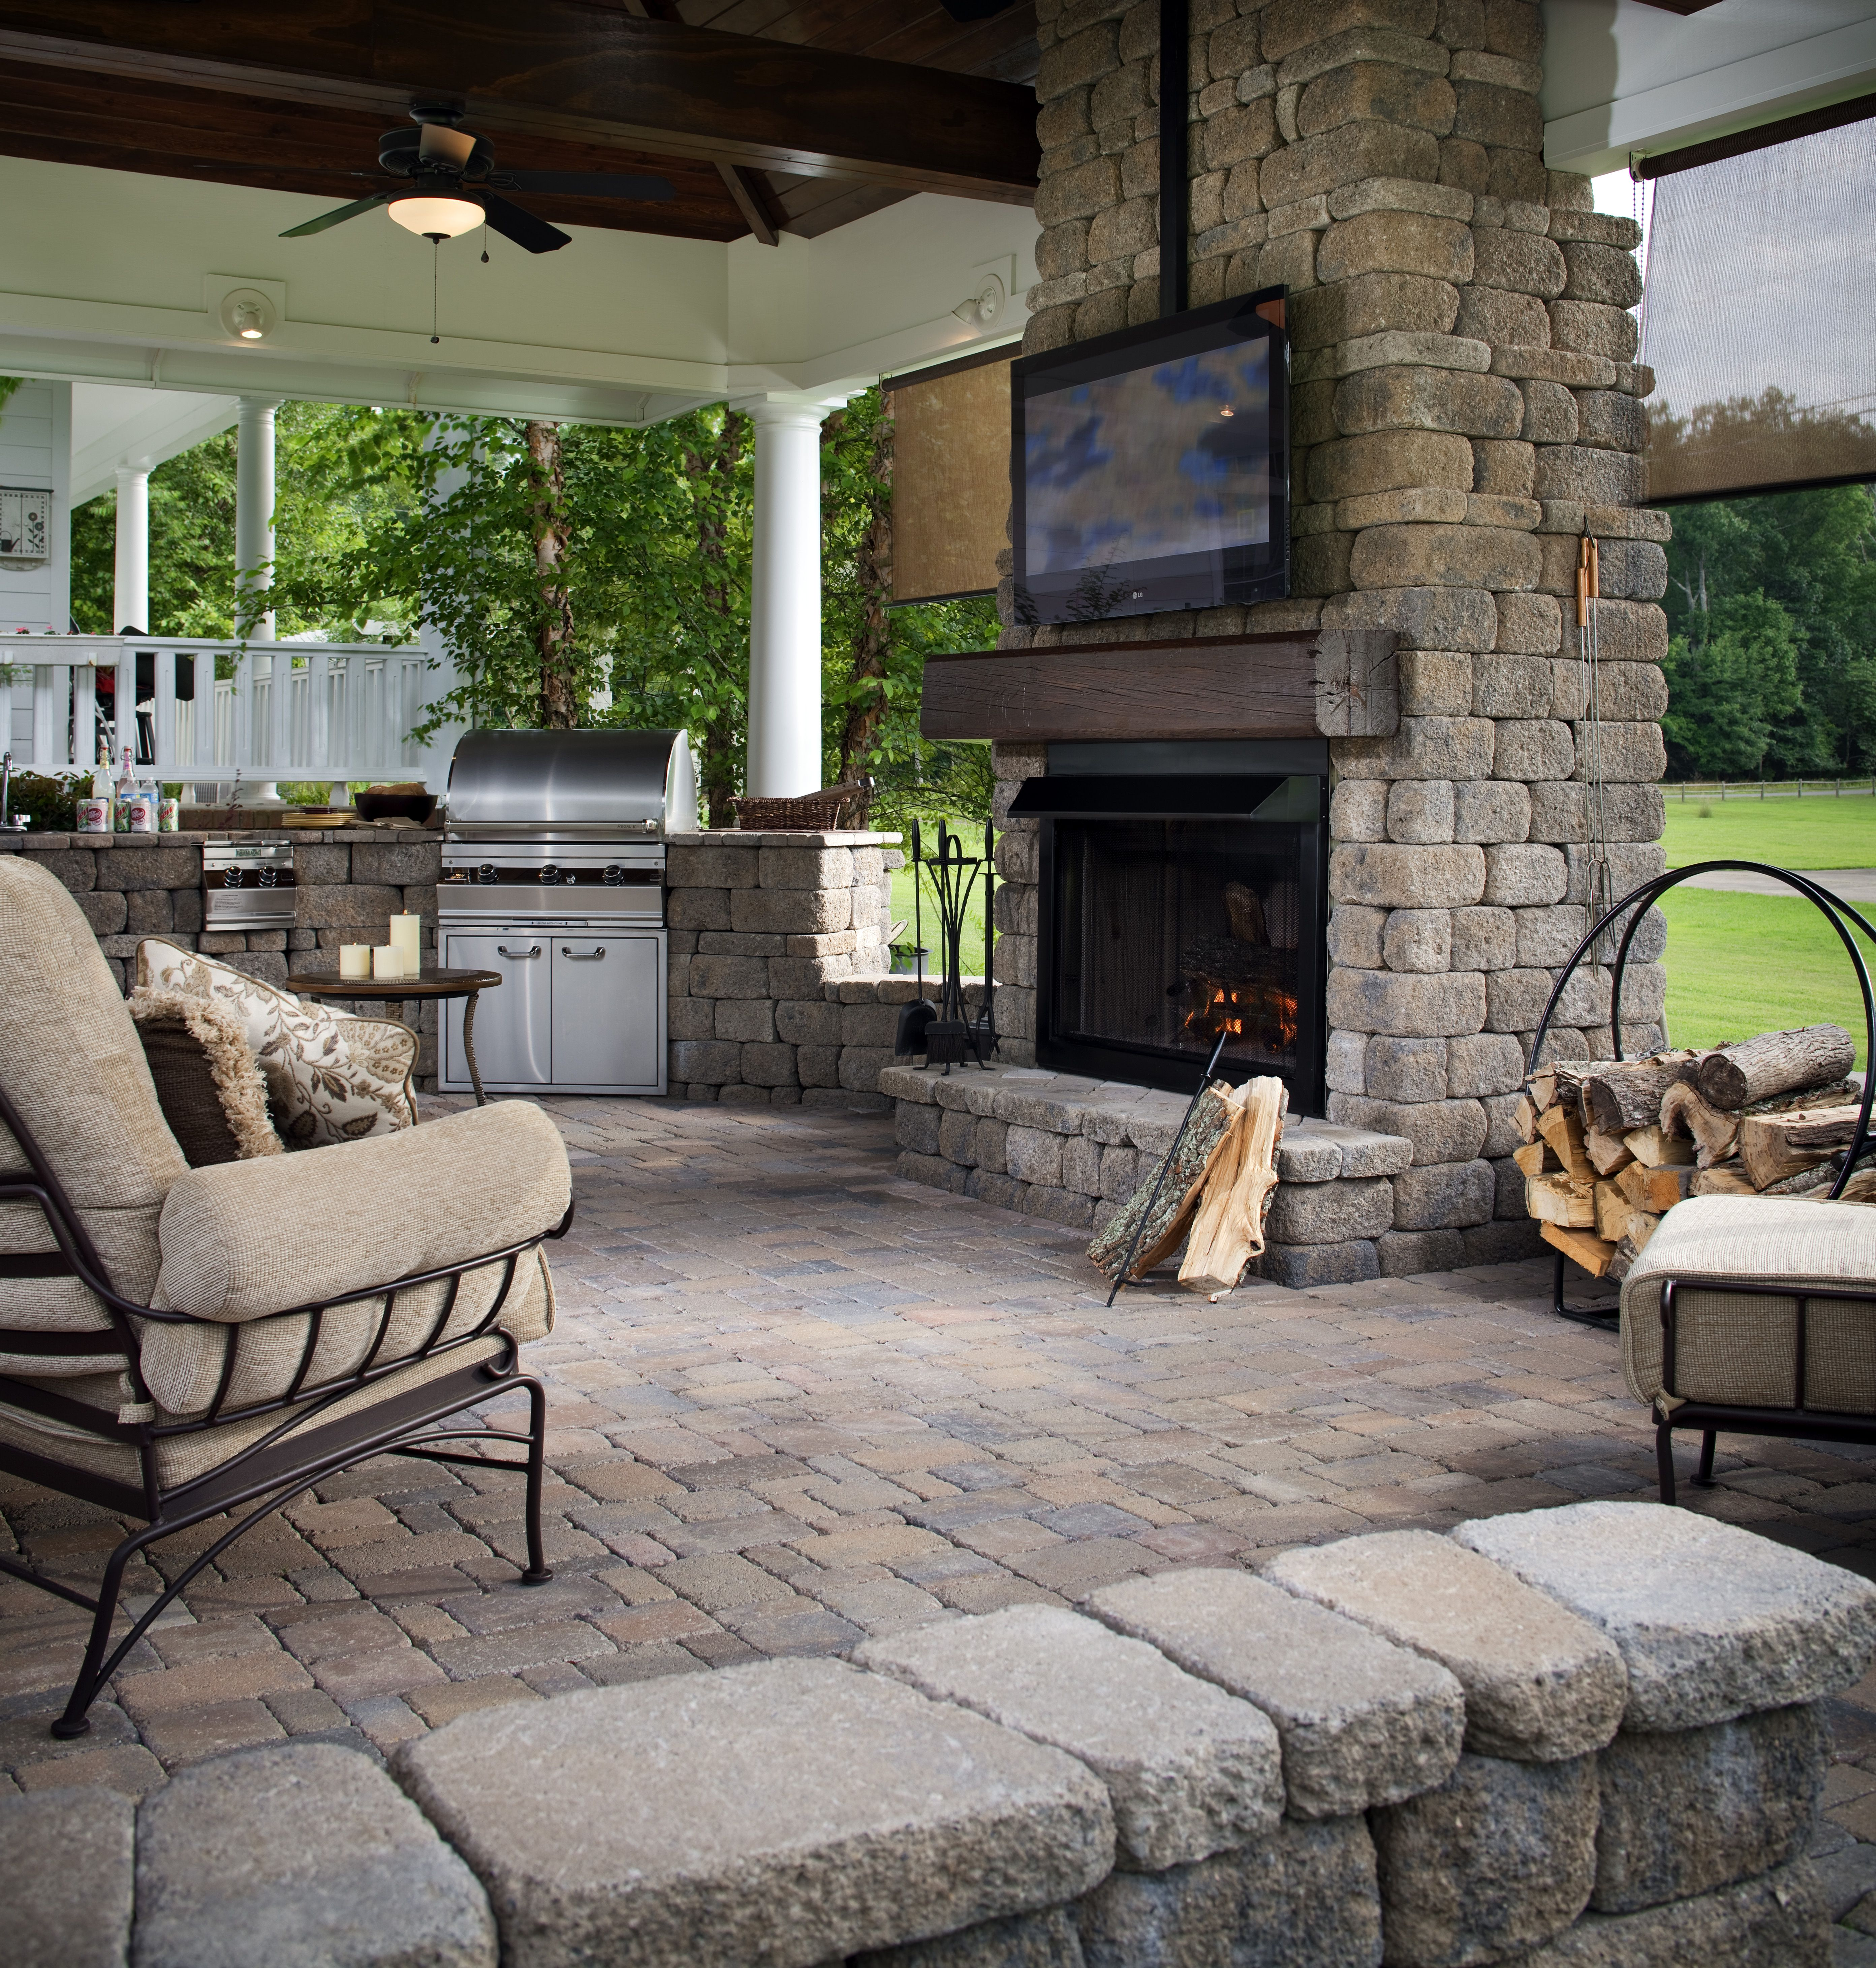 25 Of The Most Gorgeous Outdoor Kitchens: Beautiful Keystone Country Manor Outdoor Fireplace